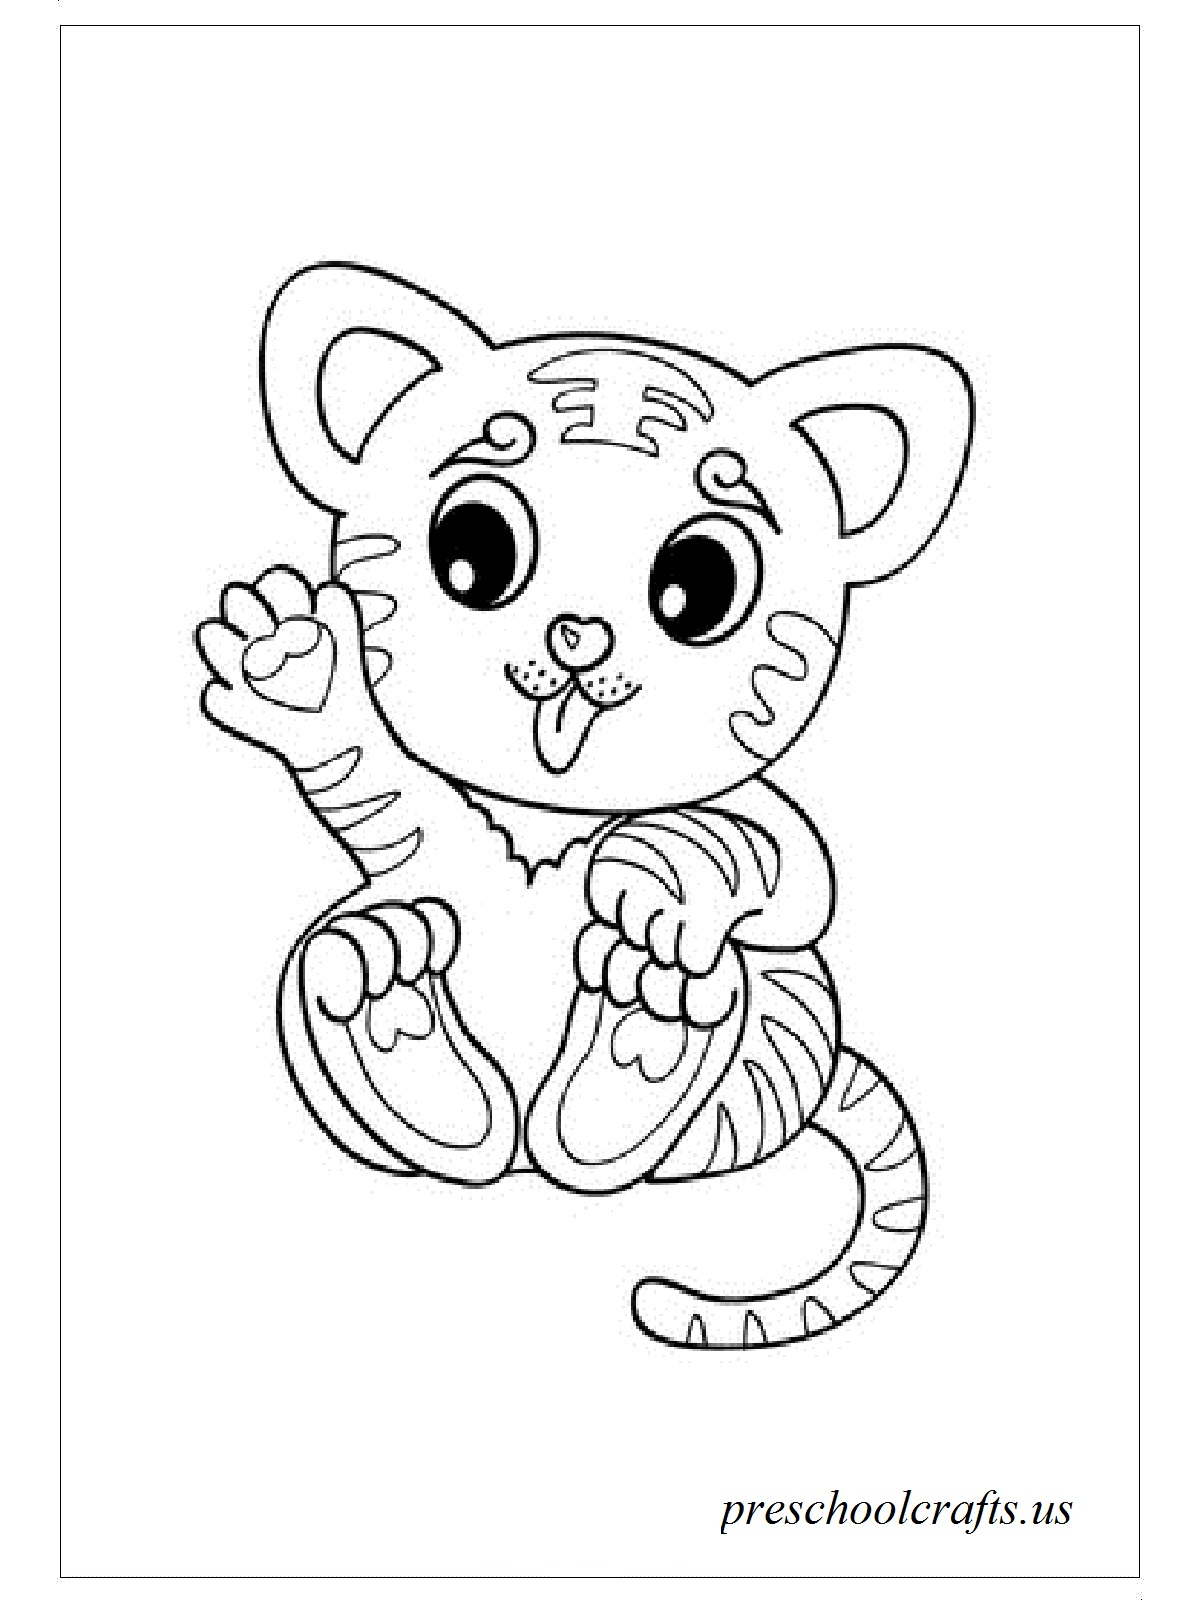 tiger coloring games tigers for children tigers kids coloring pages tiger coloring games